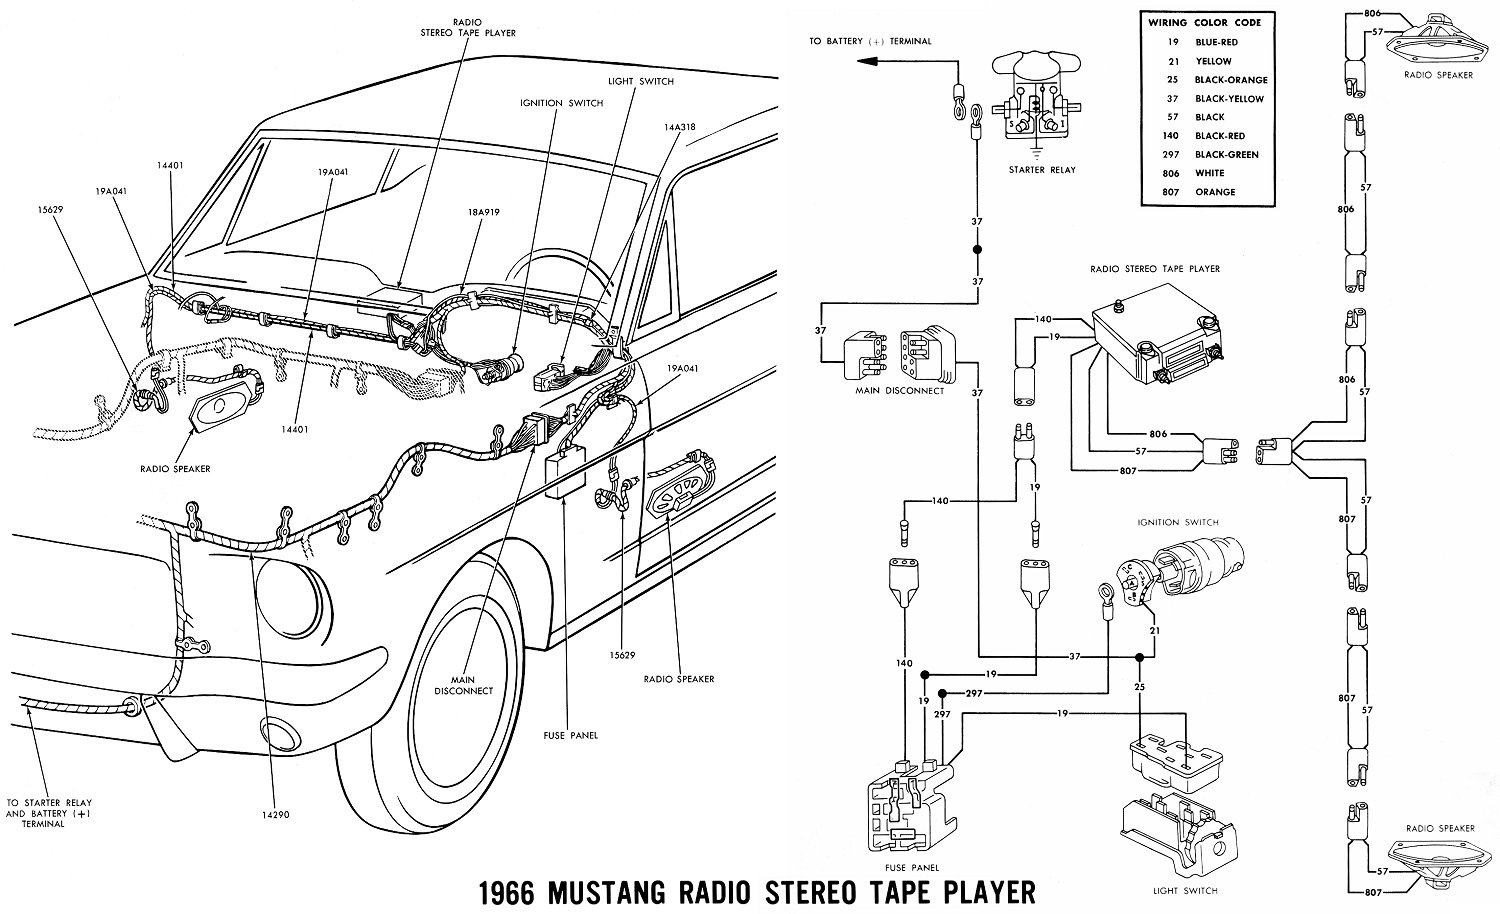 1968 Corvette Horn Wiring Diagram Library 1991 Radio Harness 65 Mustang Headlight Wire Enthusiast Diagrams U2022 Rh Rasalibre Co 66 Switch